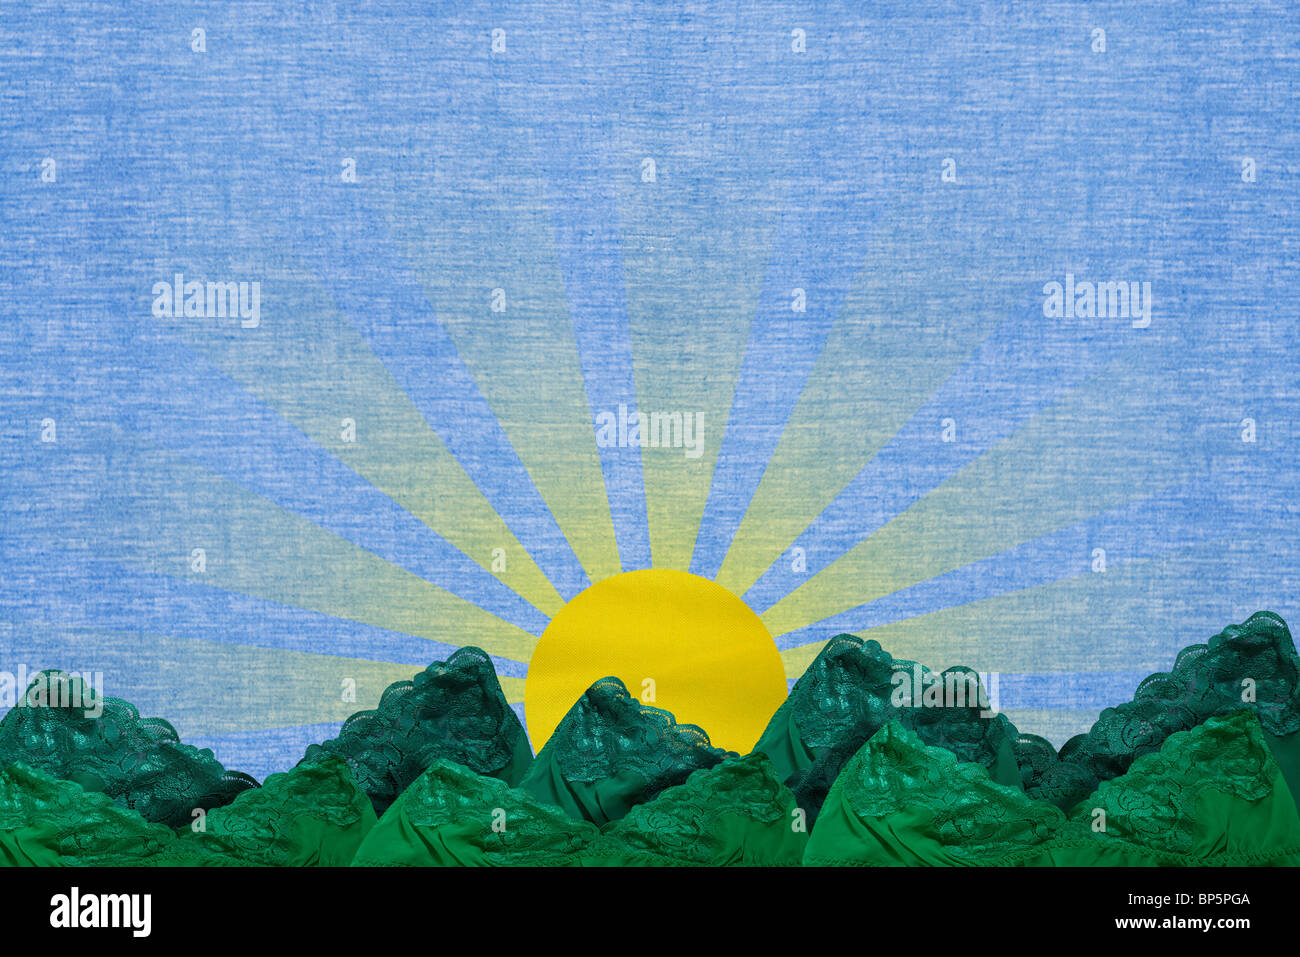 Sun shining over rural scene - Stock Image